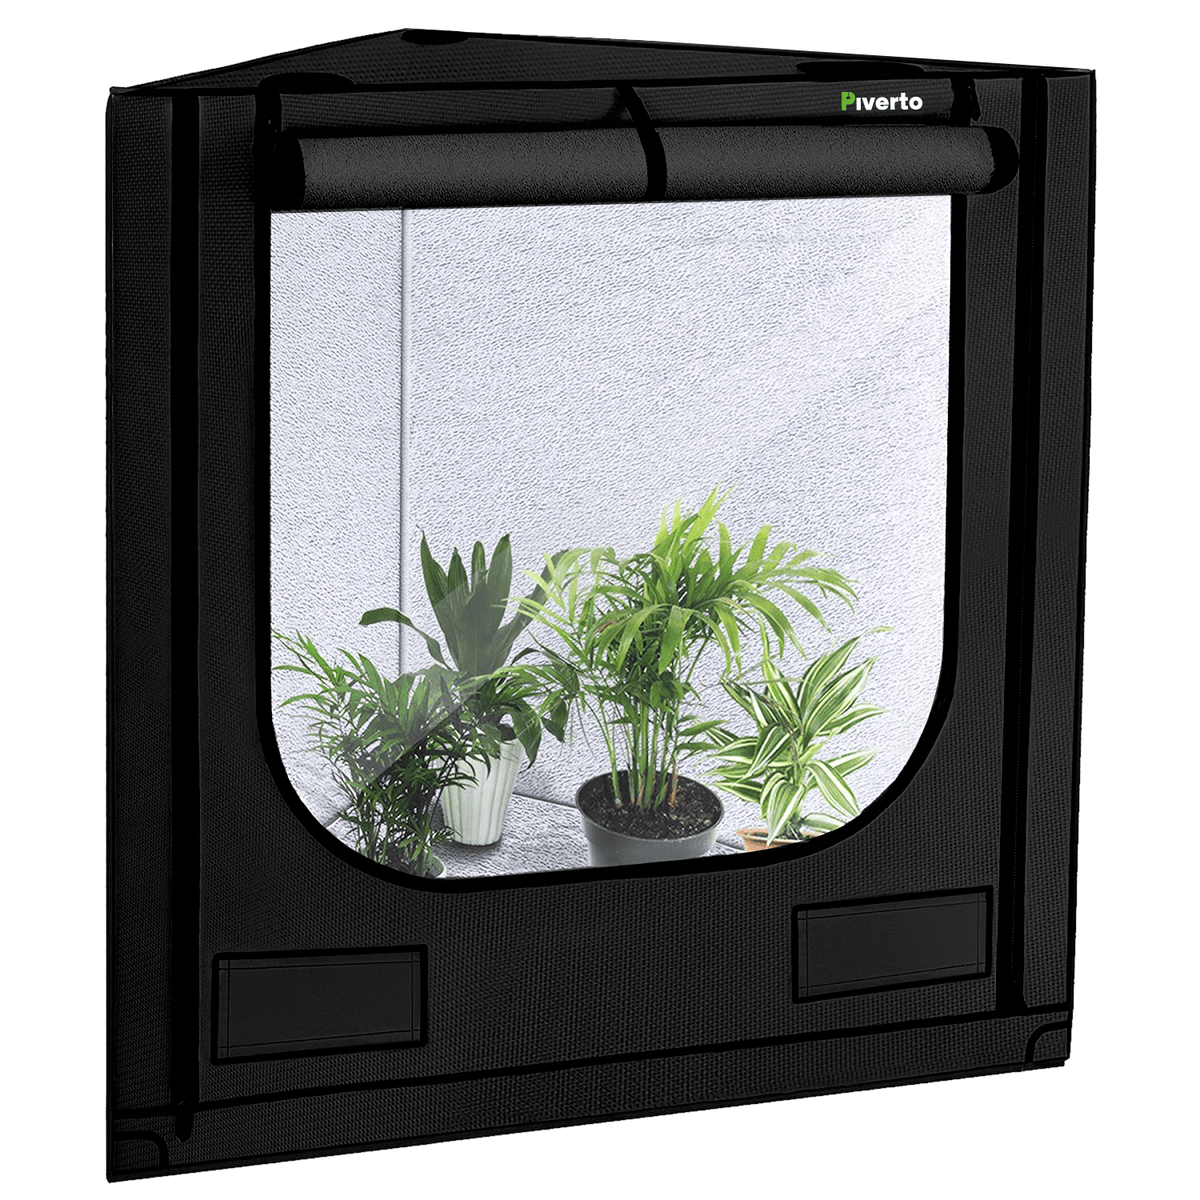 Piverto Piverto Indoor Corner Grow Tent